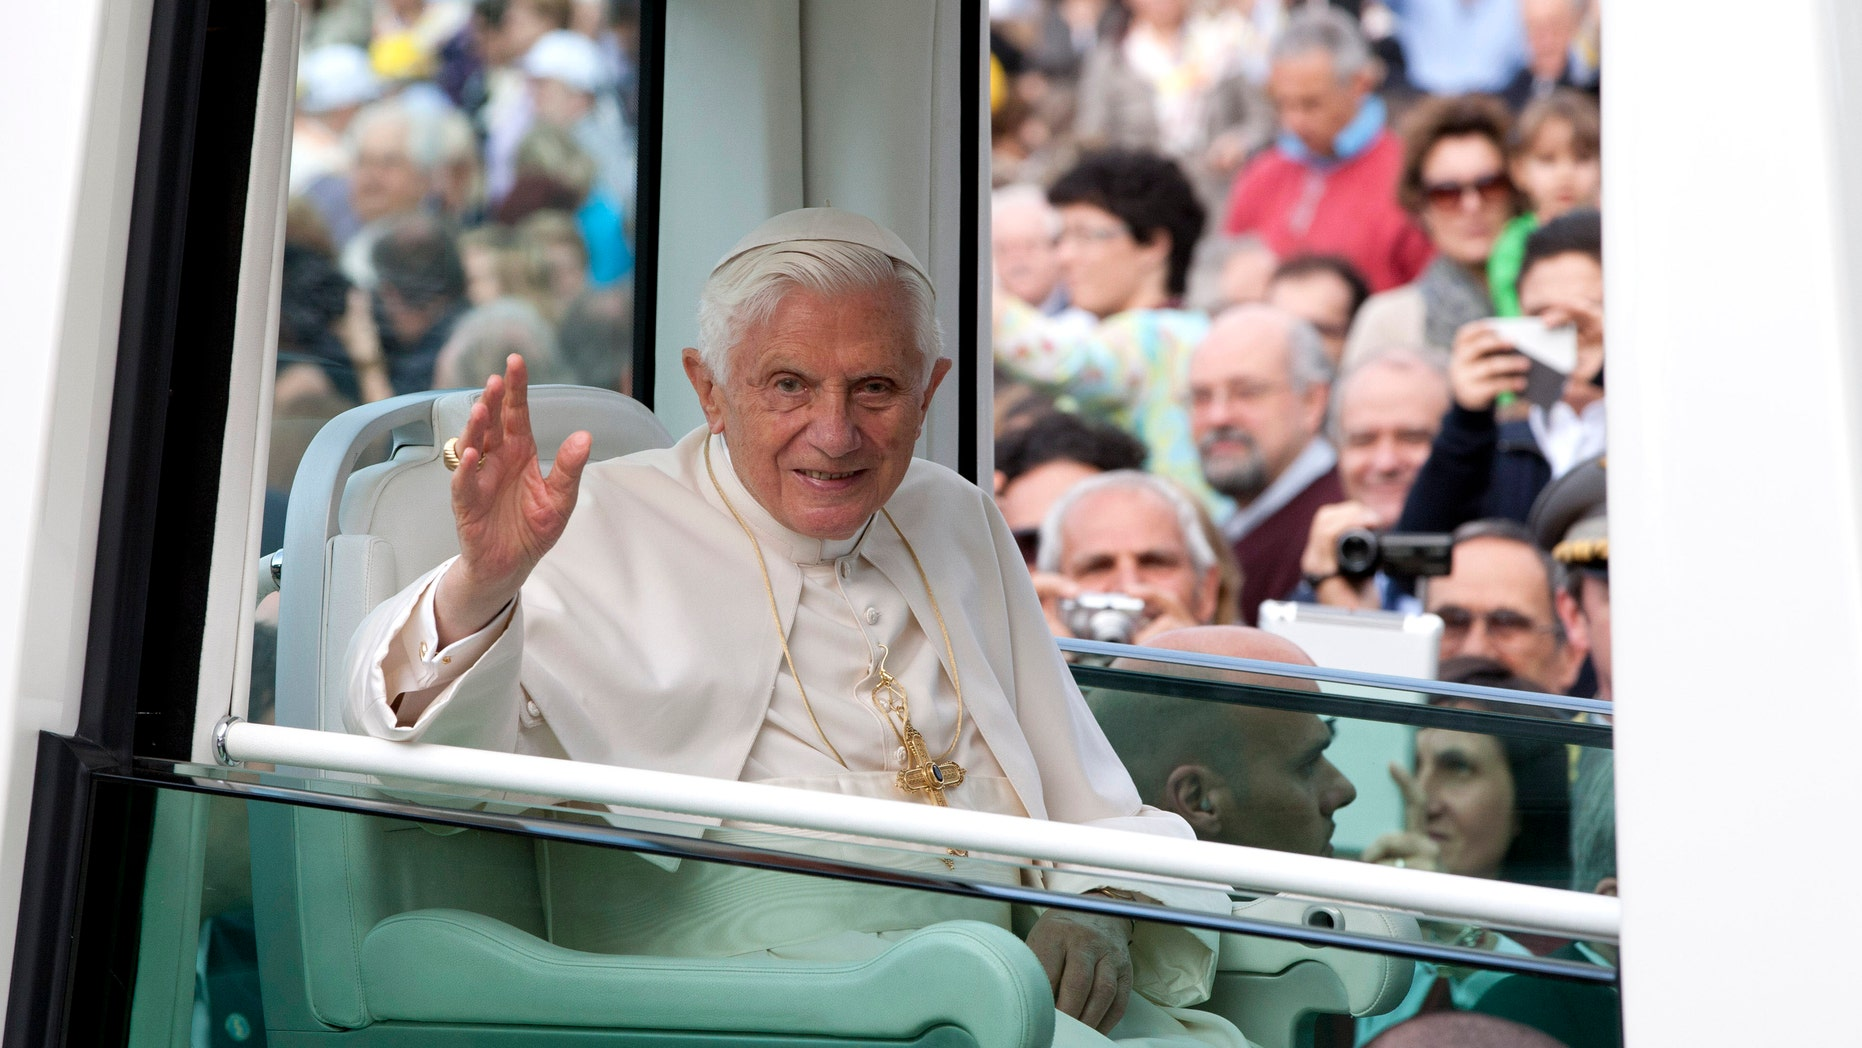 Pope Benedict XVI in a 2012 file photo.